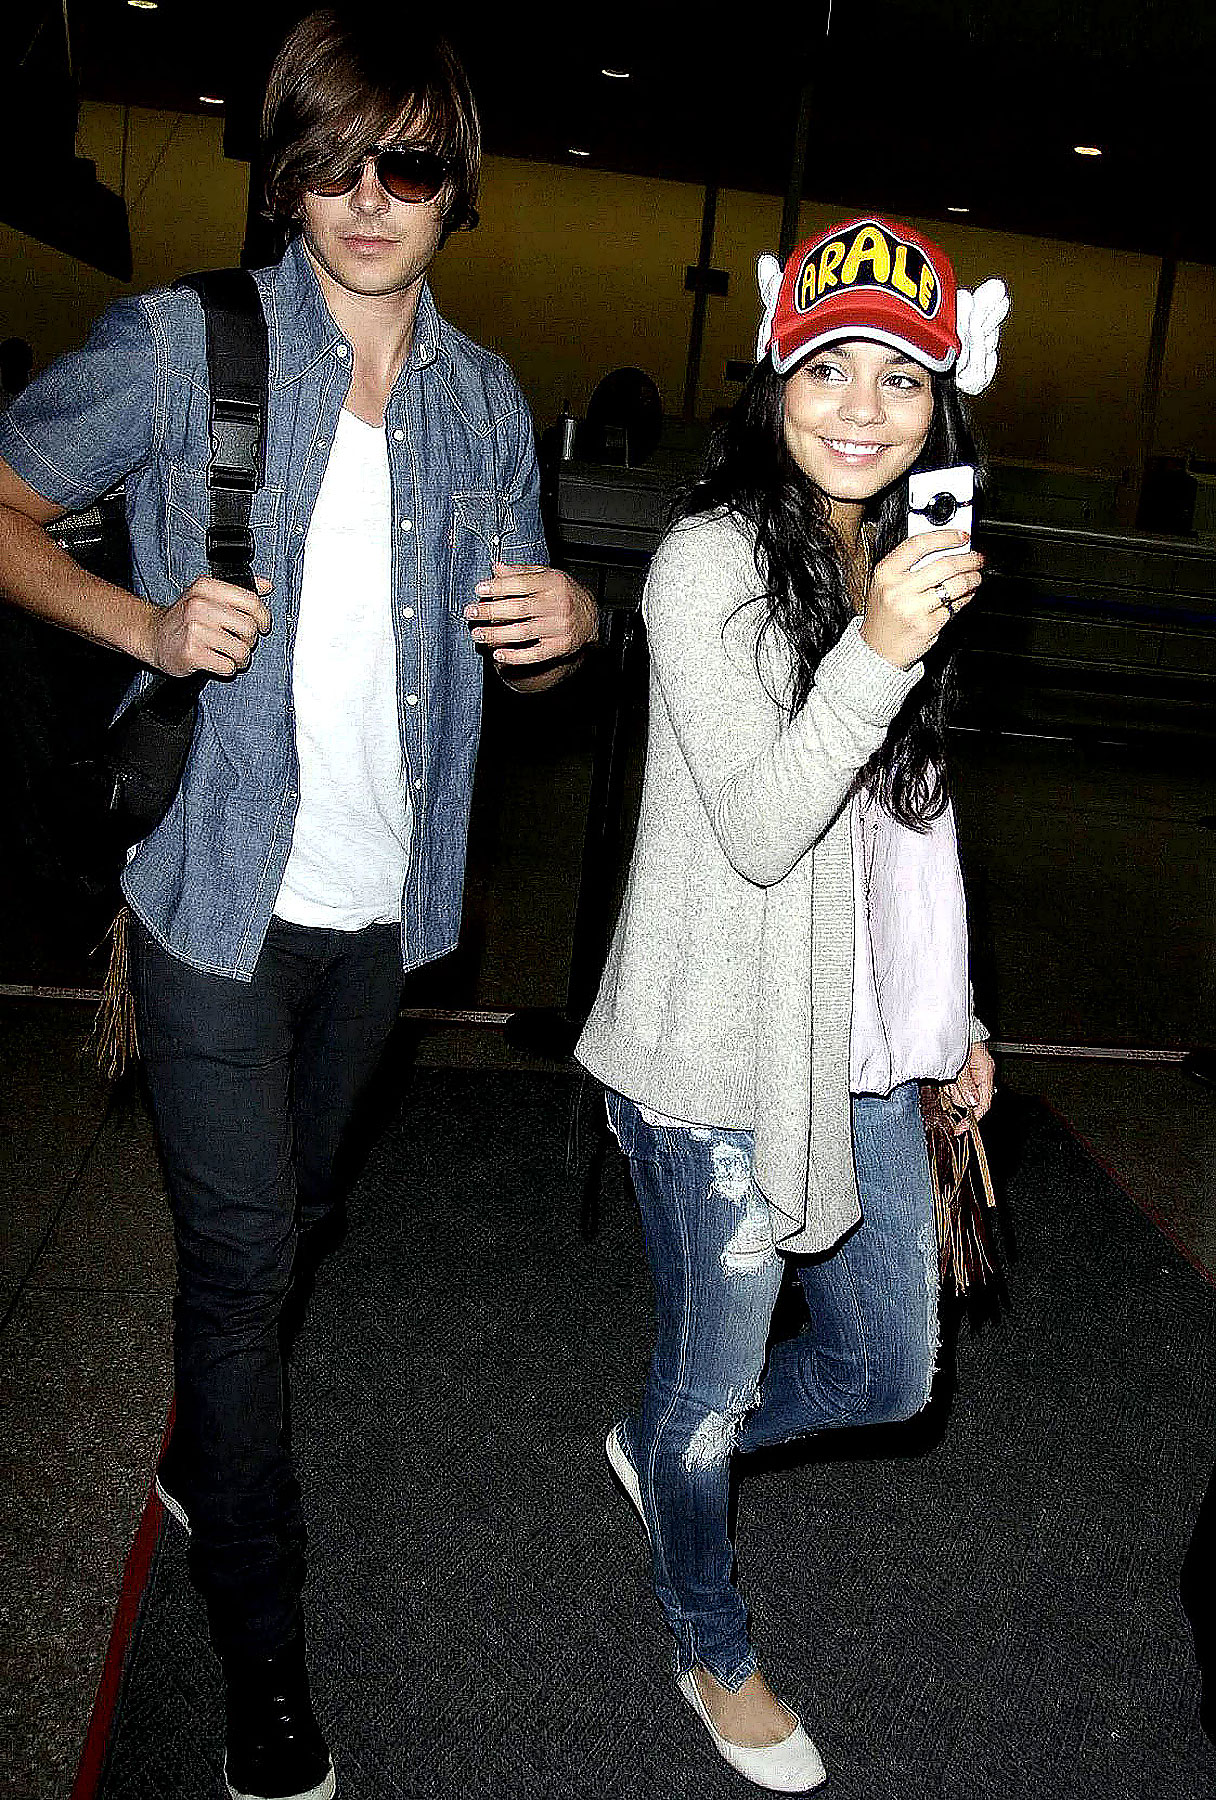 Zac Efron and Vanessa Hudgens Are Back From Japan!